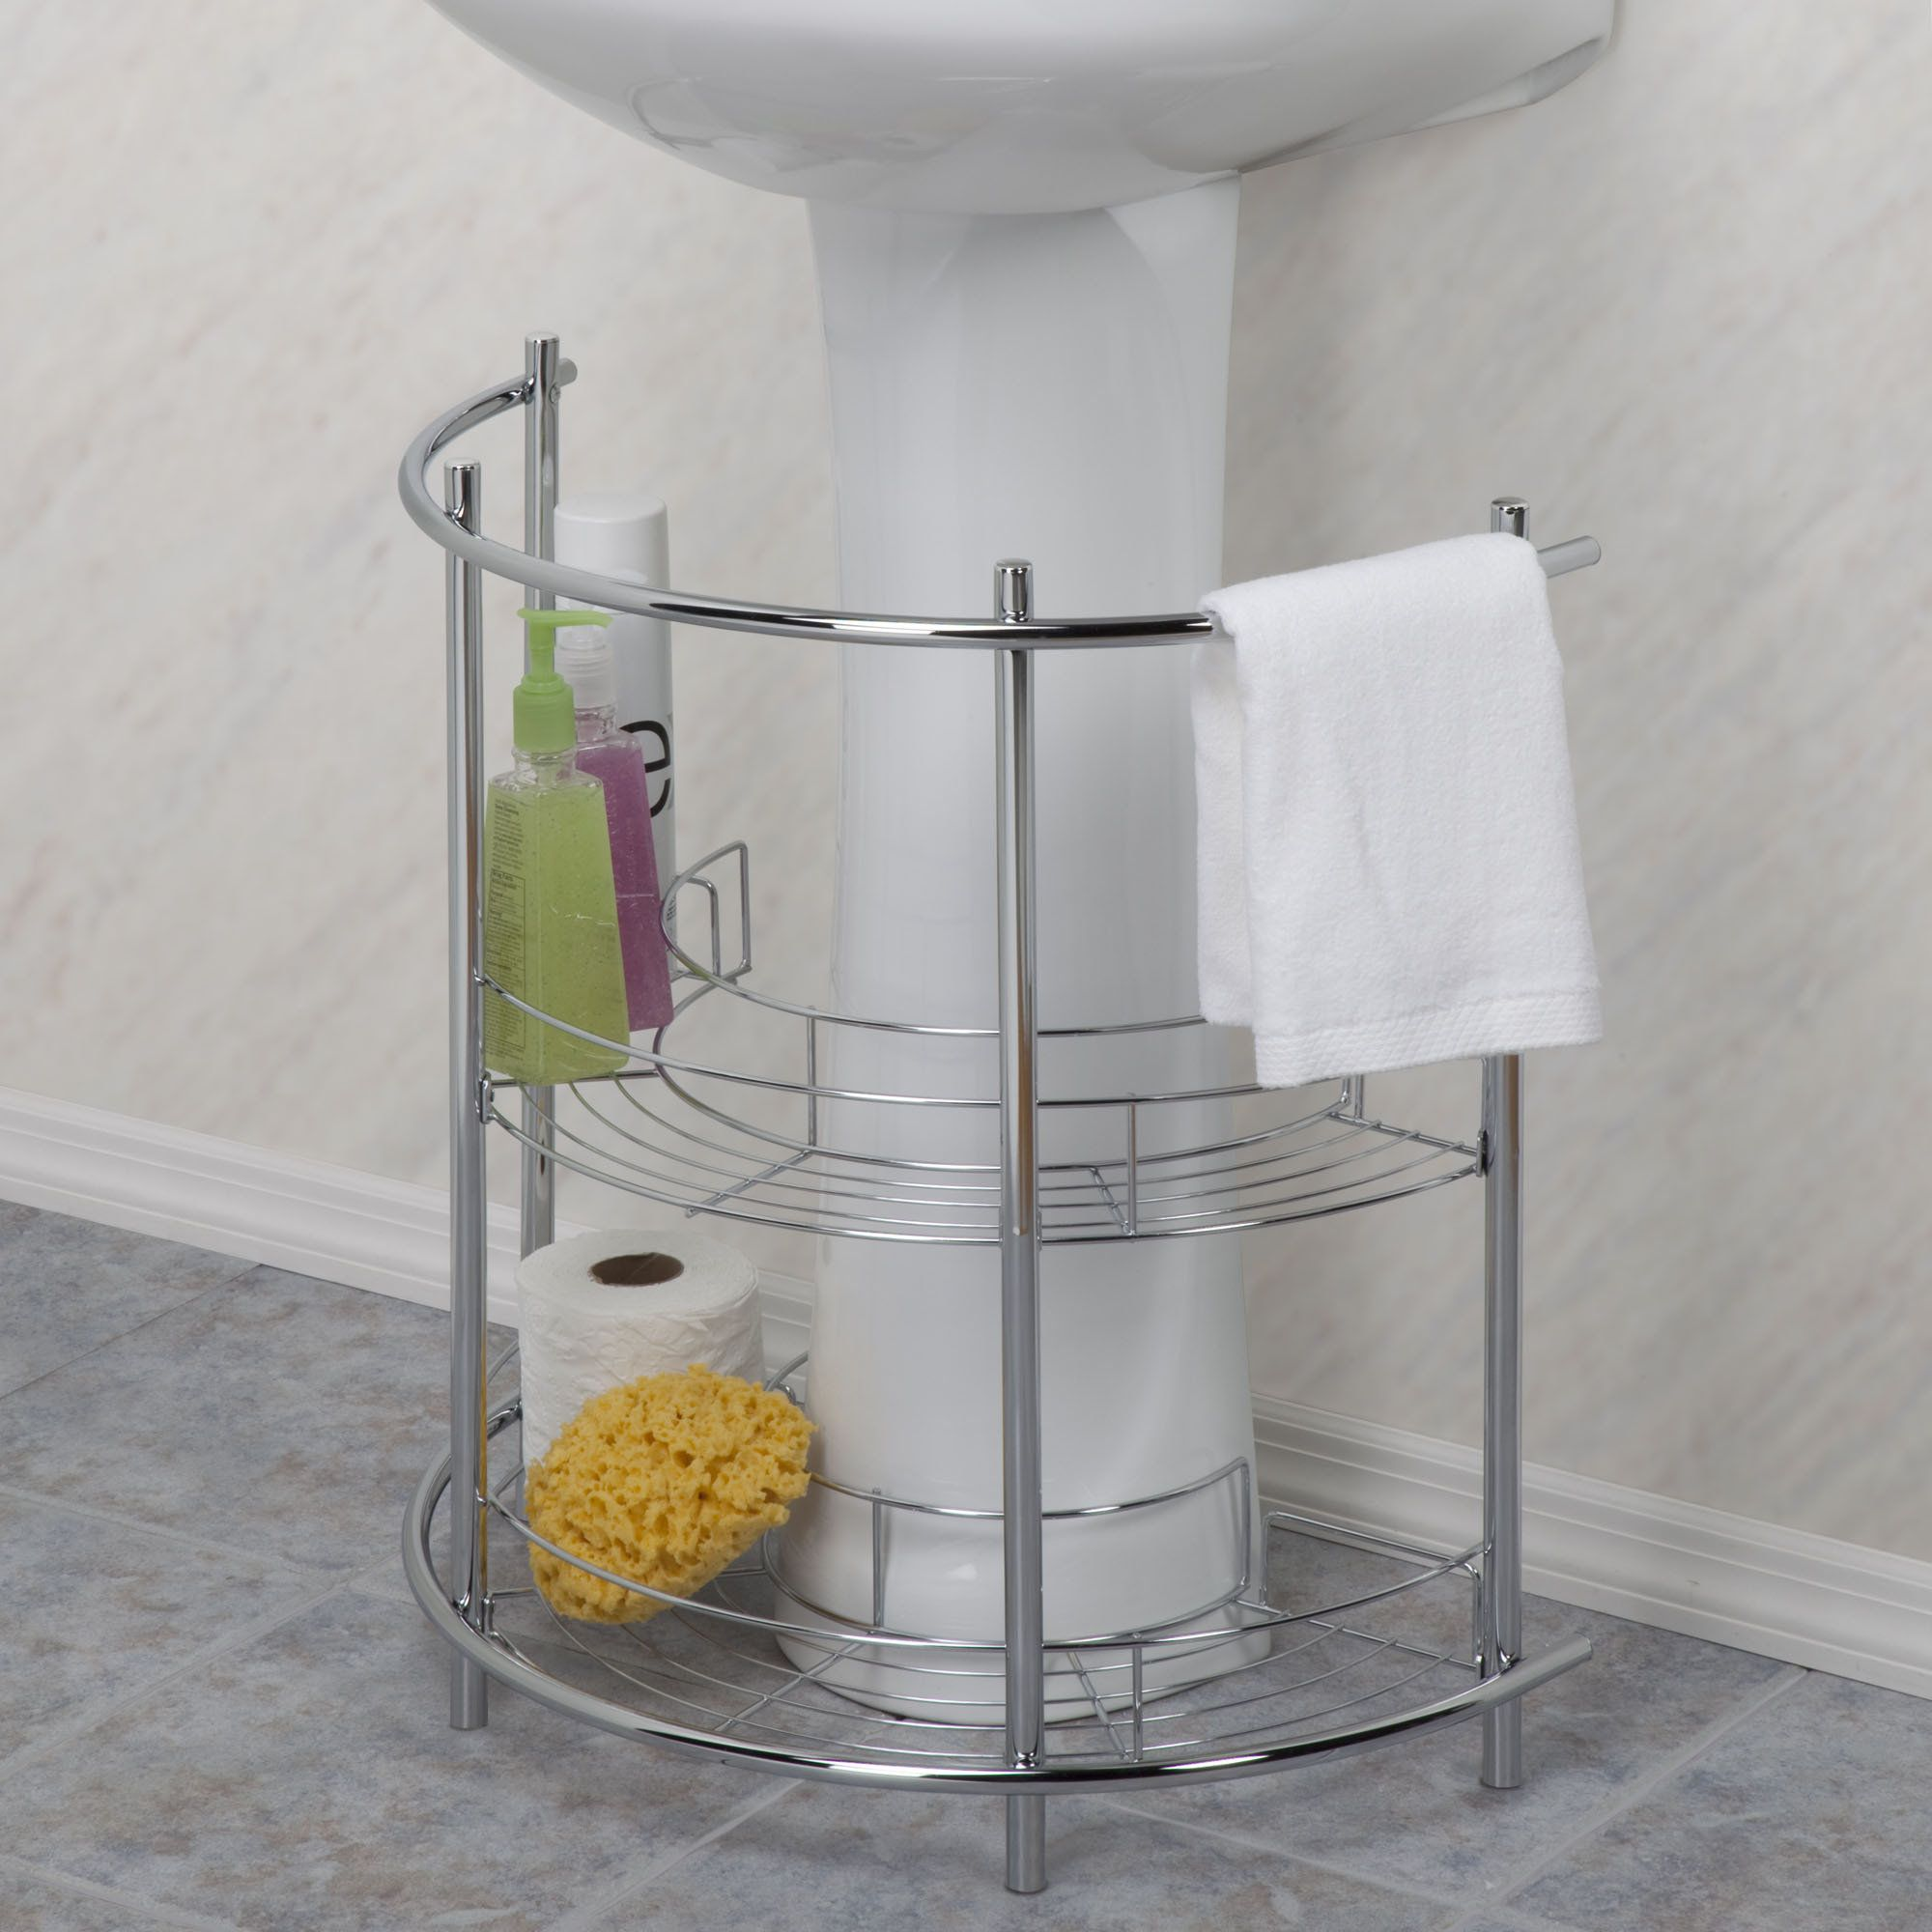 find this pin and more on ideas bathroom storage shelf nickel chrome finish under sink pedestal